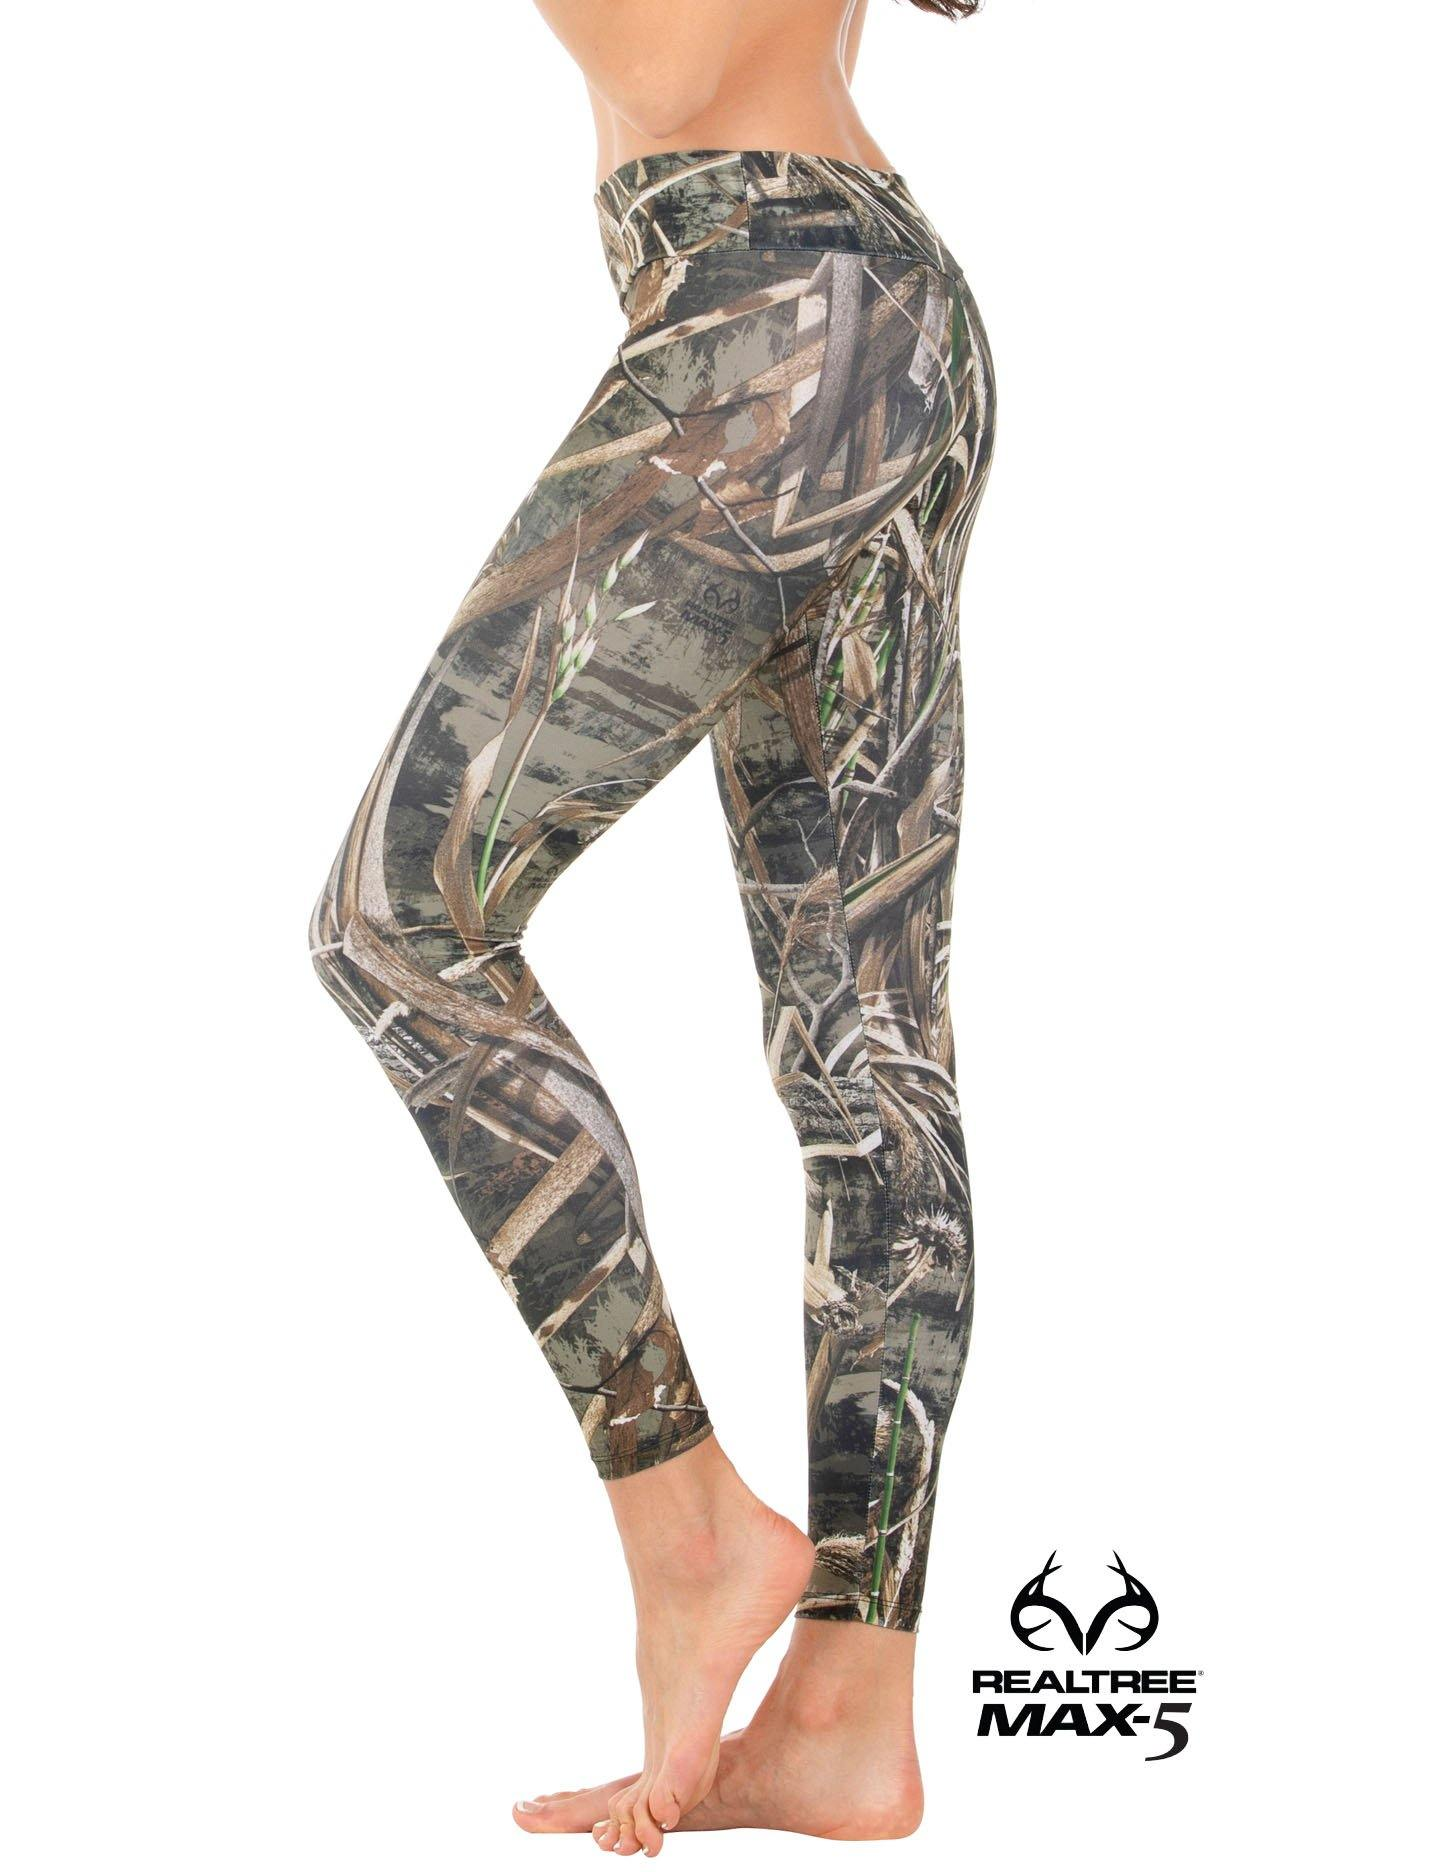 Apsara Leggings Low Waist Cropped, Realtree Max-5